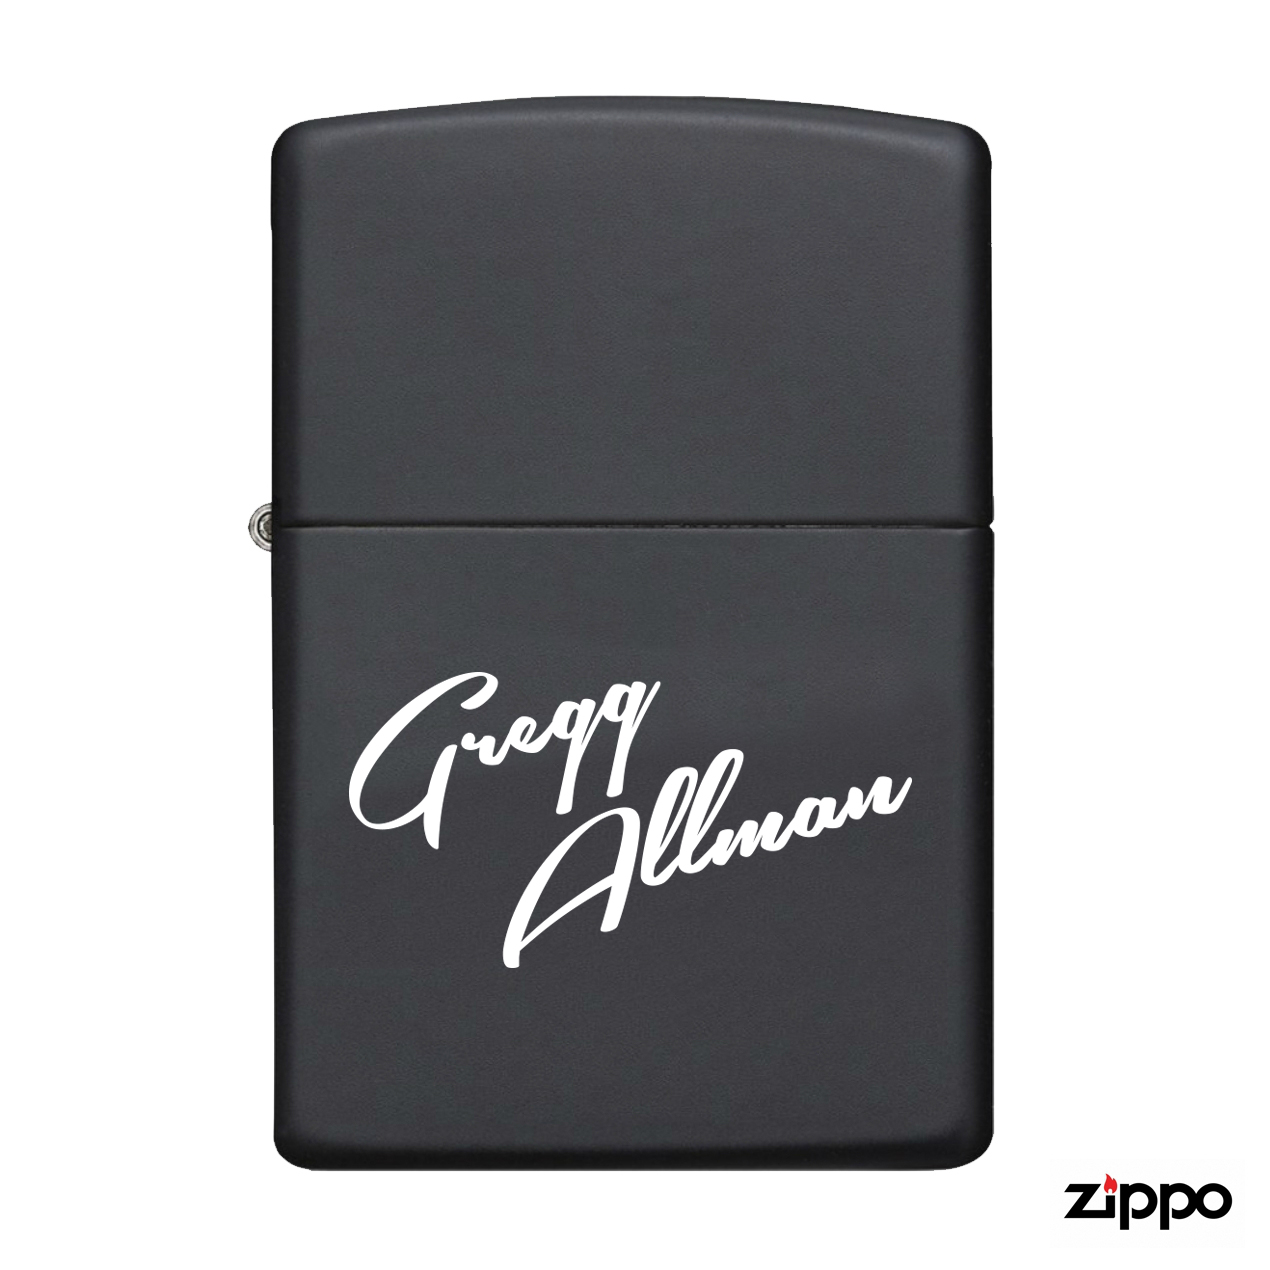 "Gregg Allman ""Blues-Flavored"" Zippo Lighter"